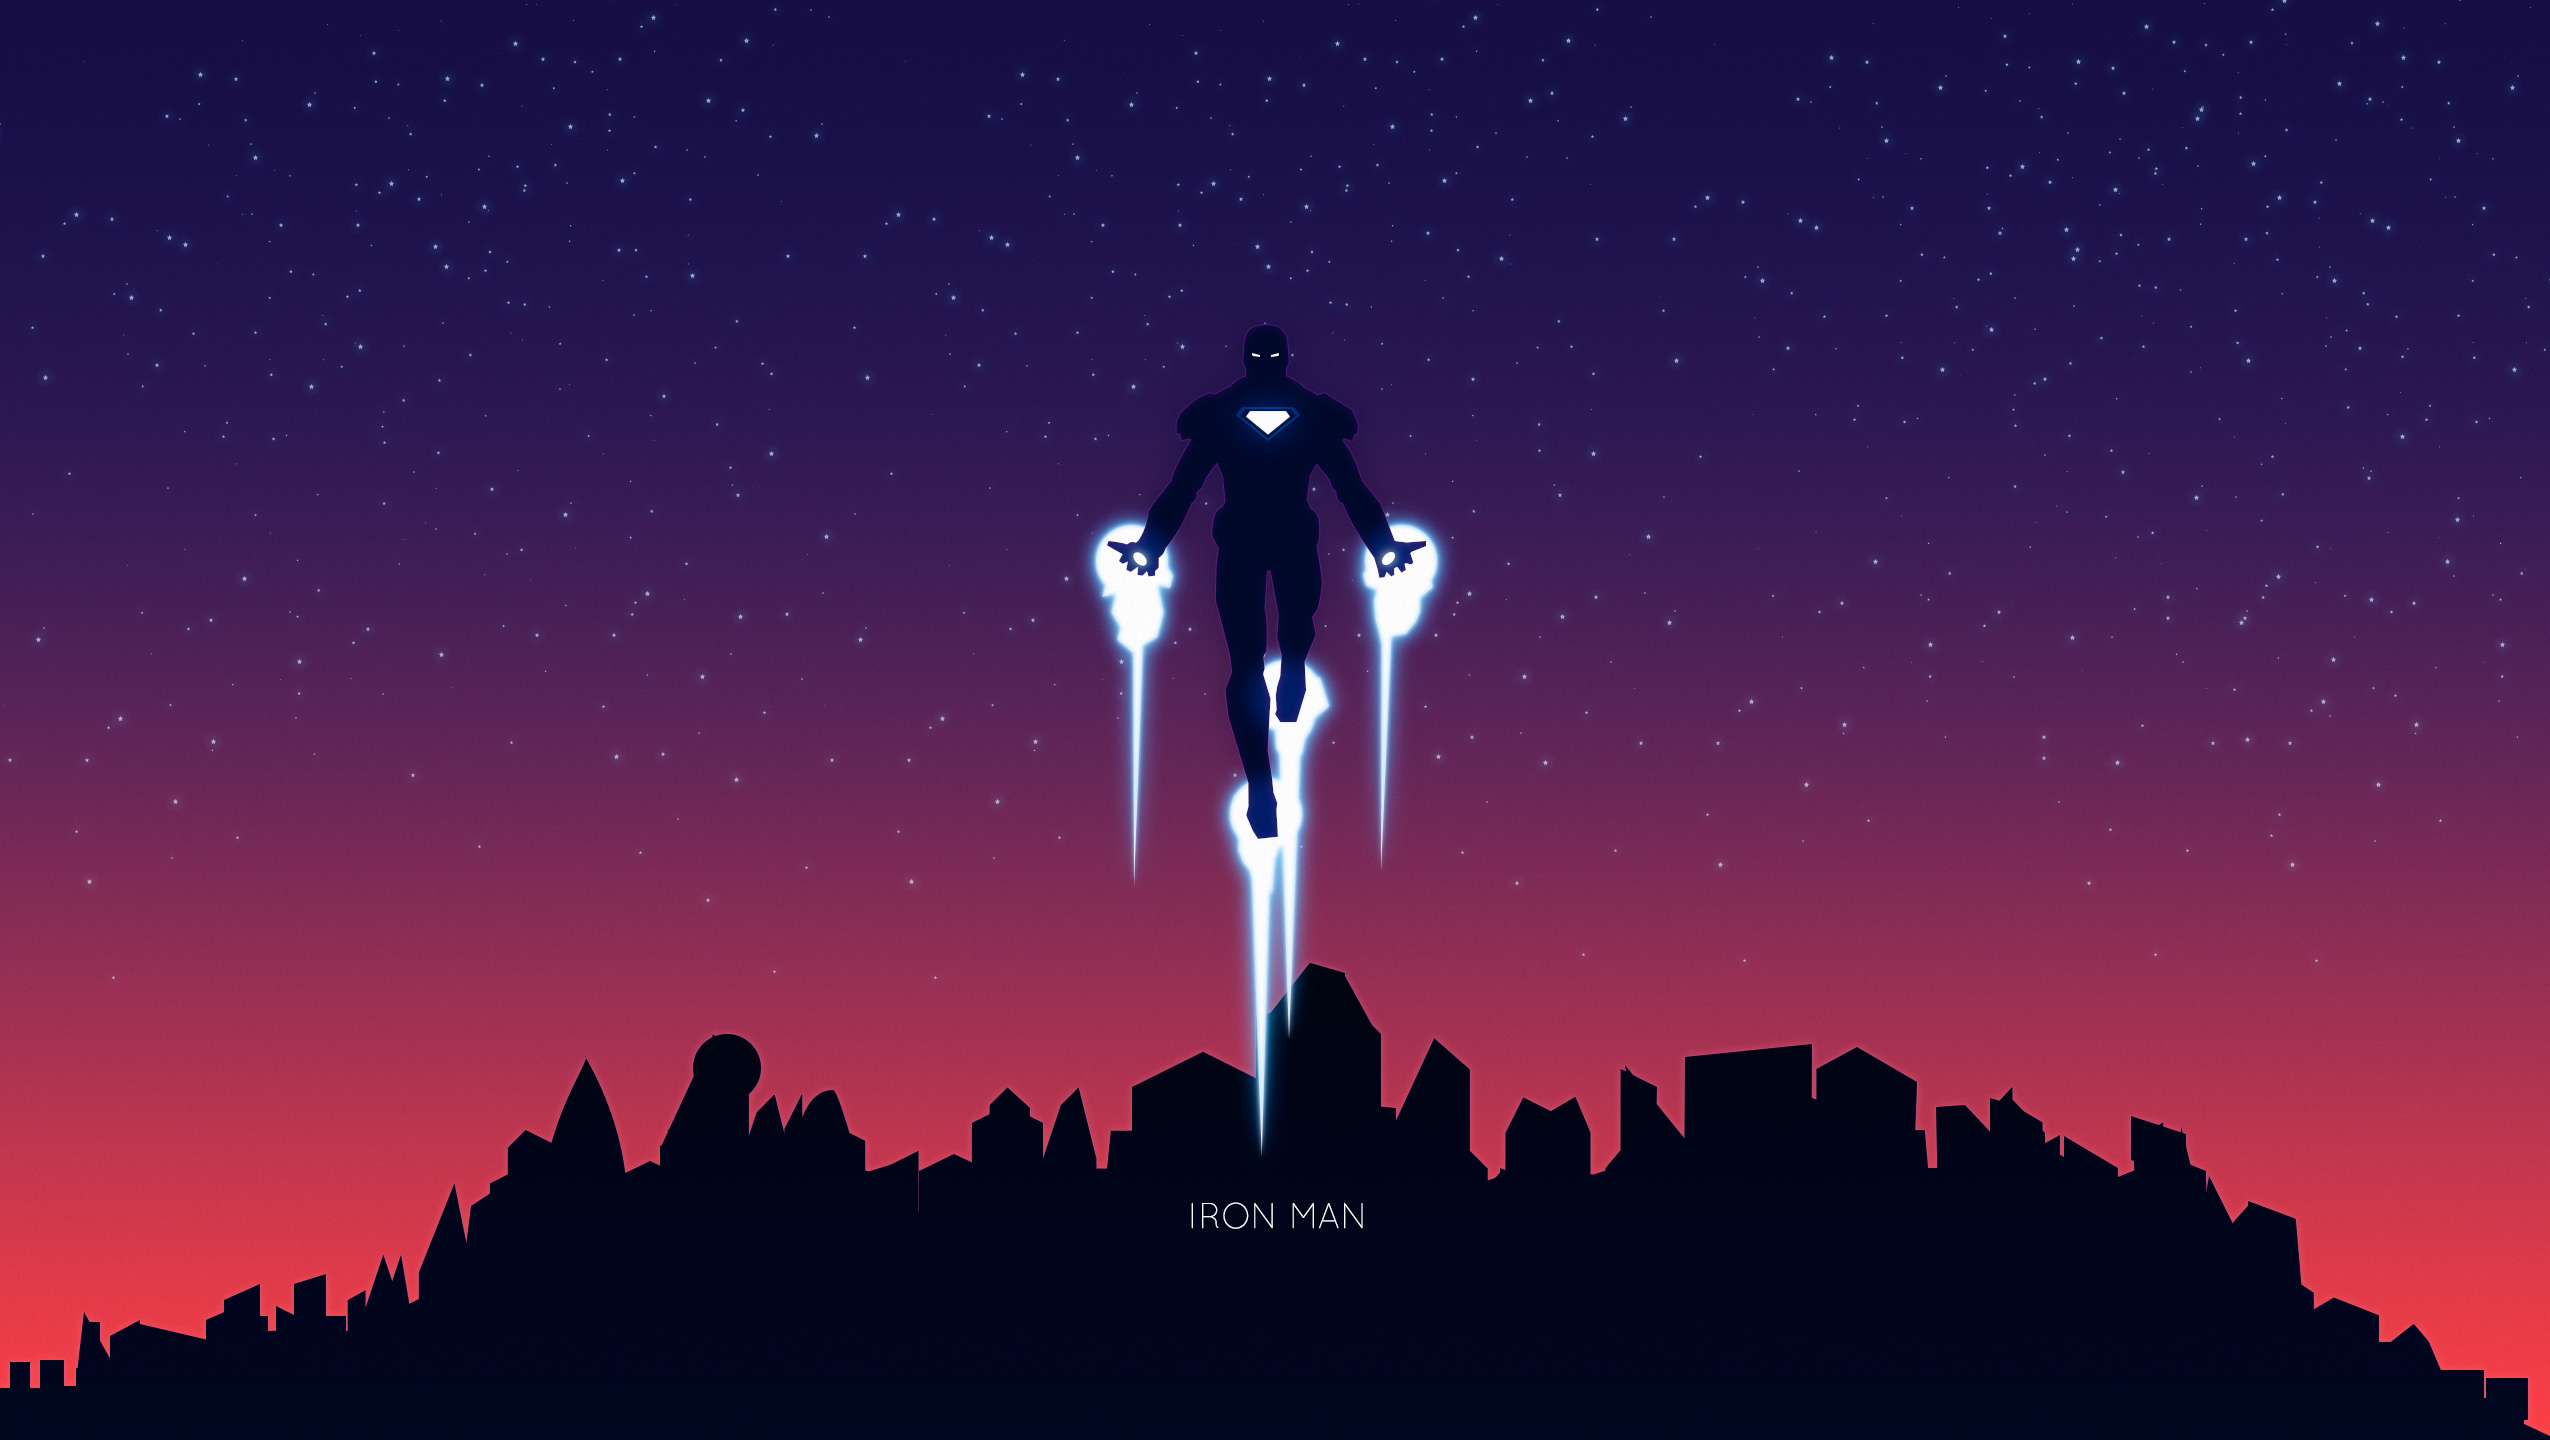 Iron Man Minimalism 2 Hd Superheroes 4k Wallpapers Images